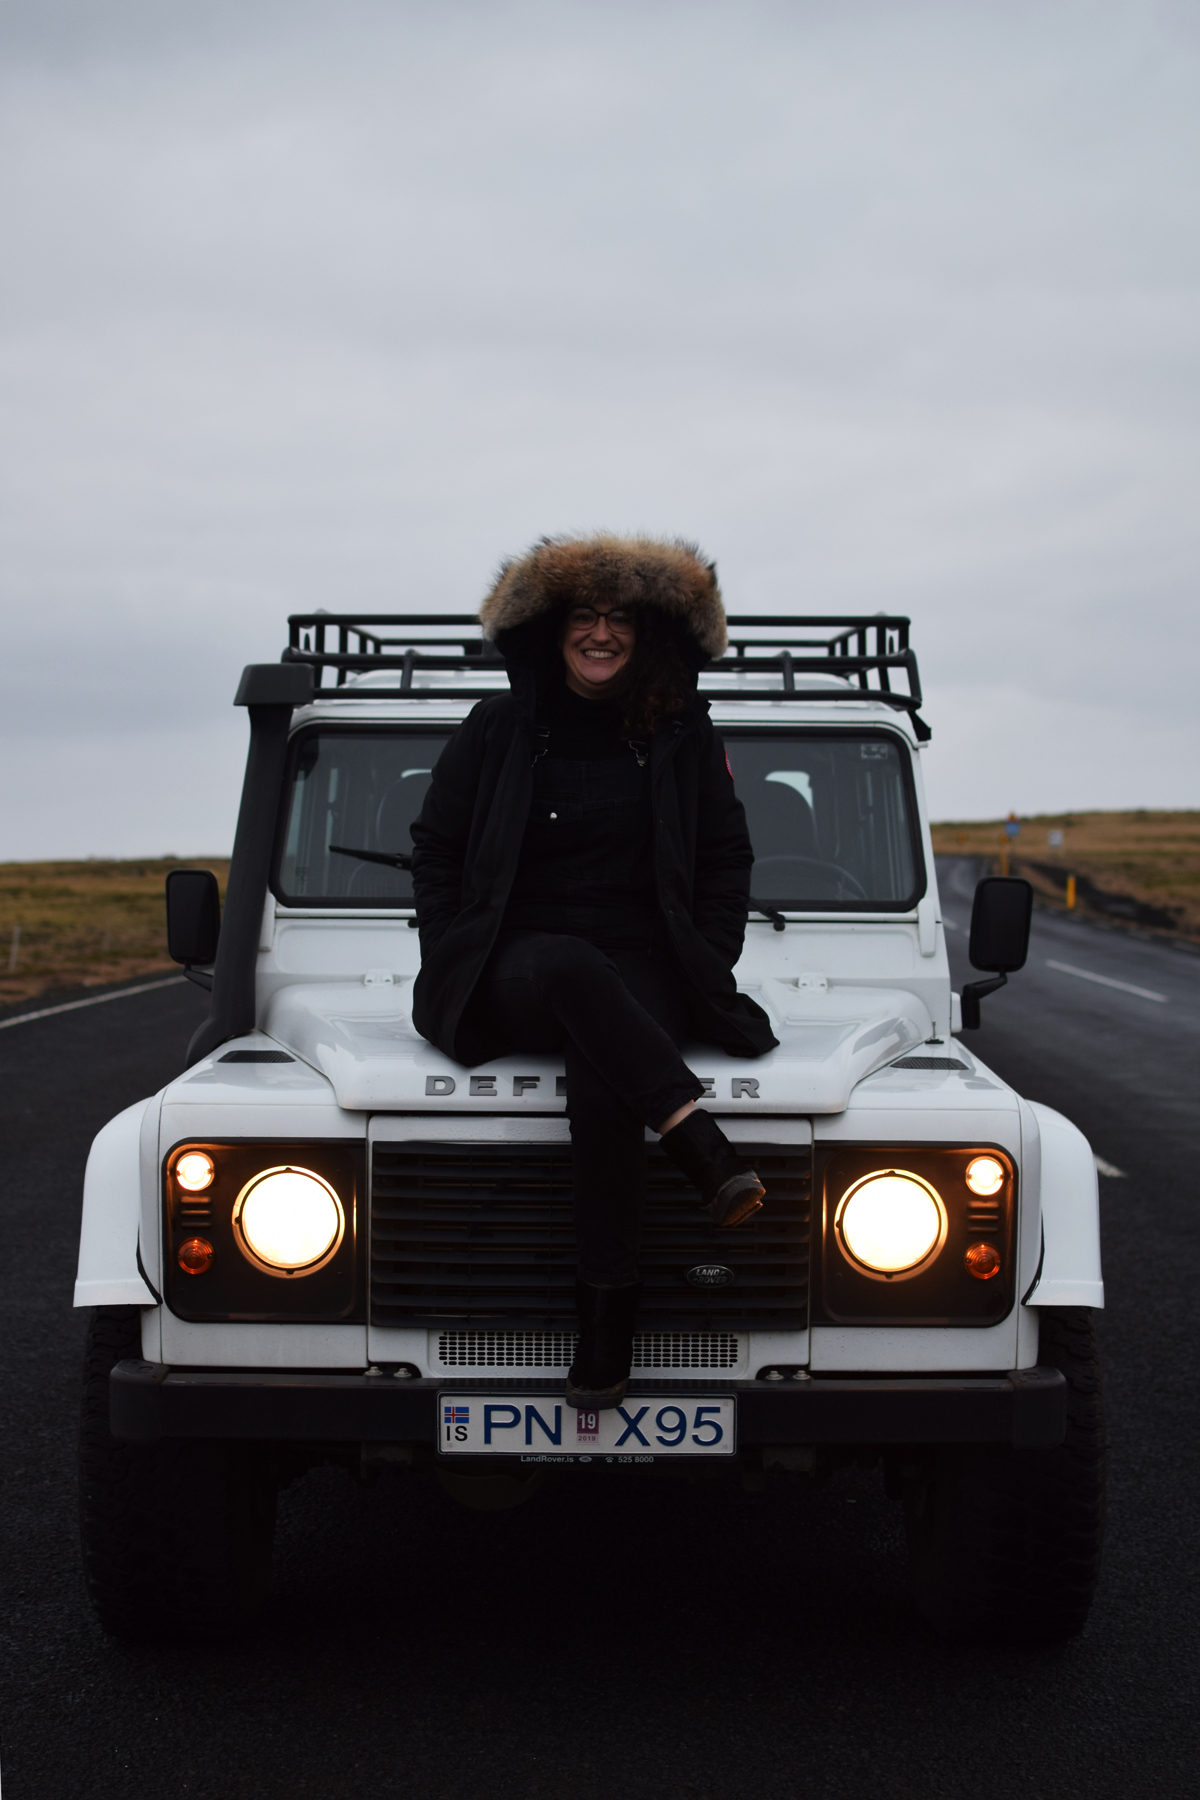 landrover 4x4 in Iceland